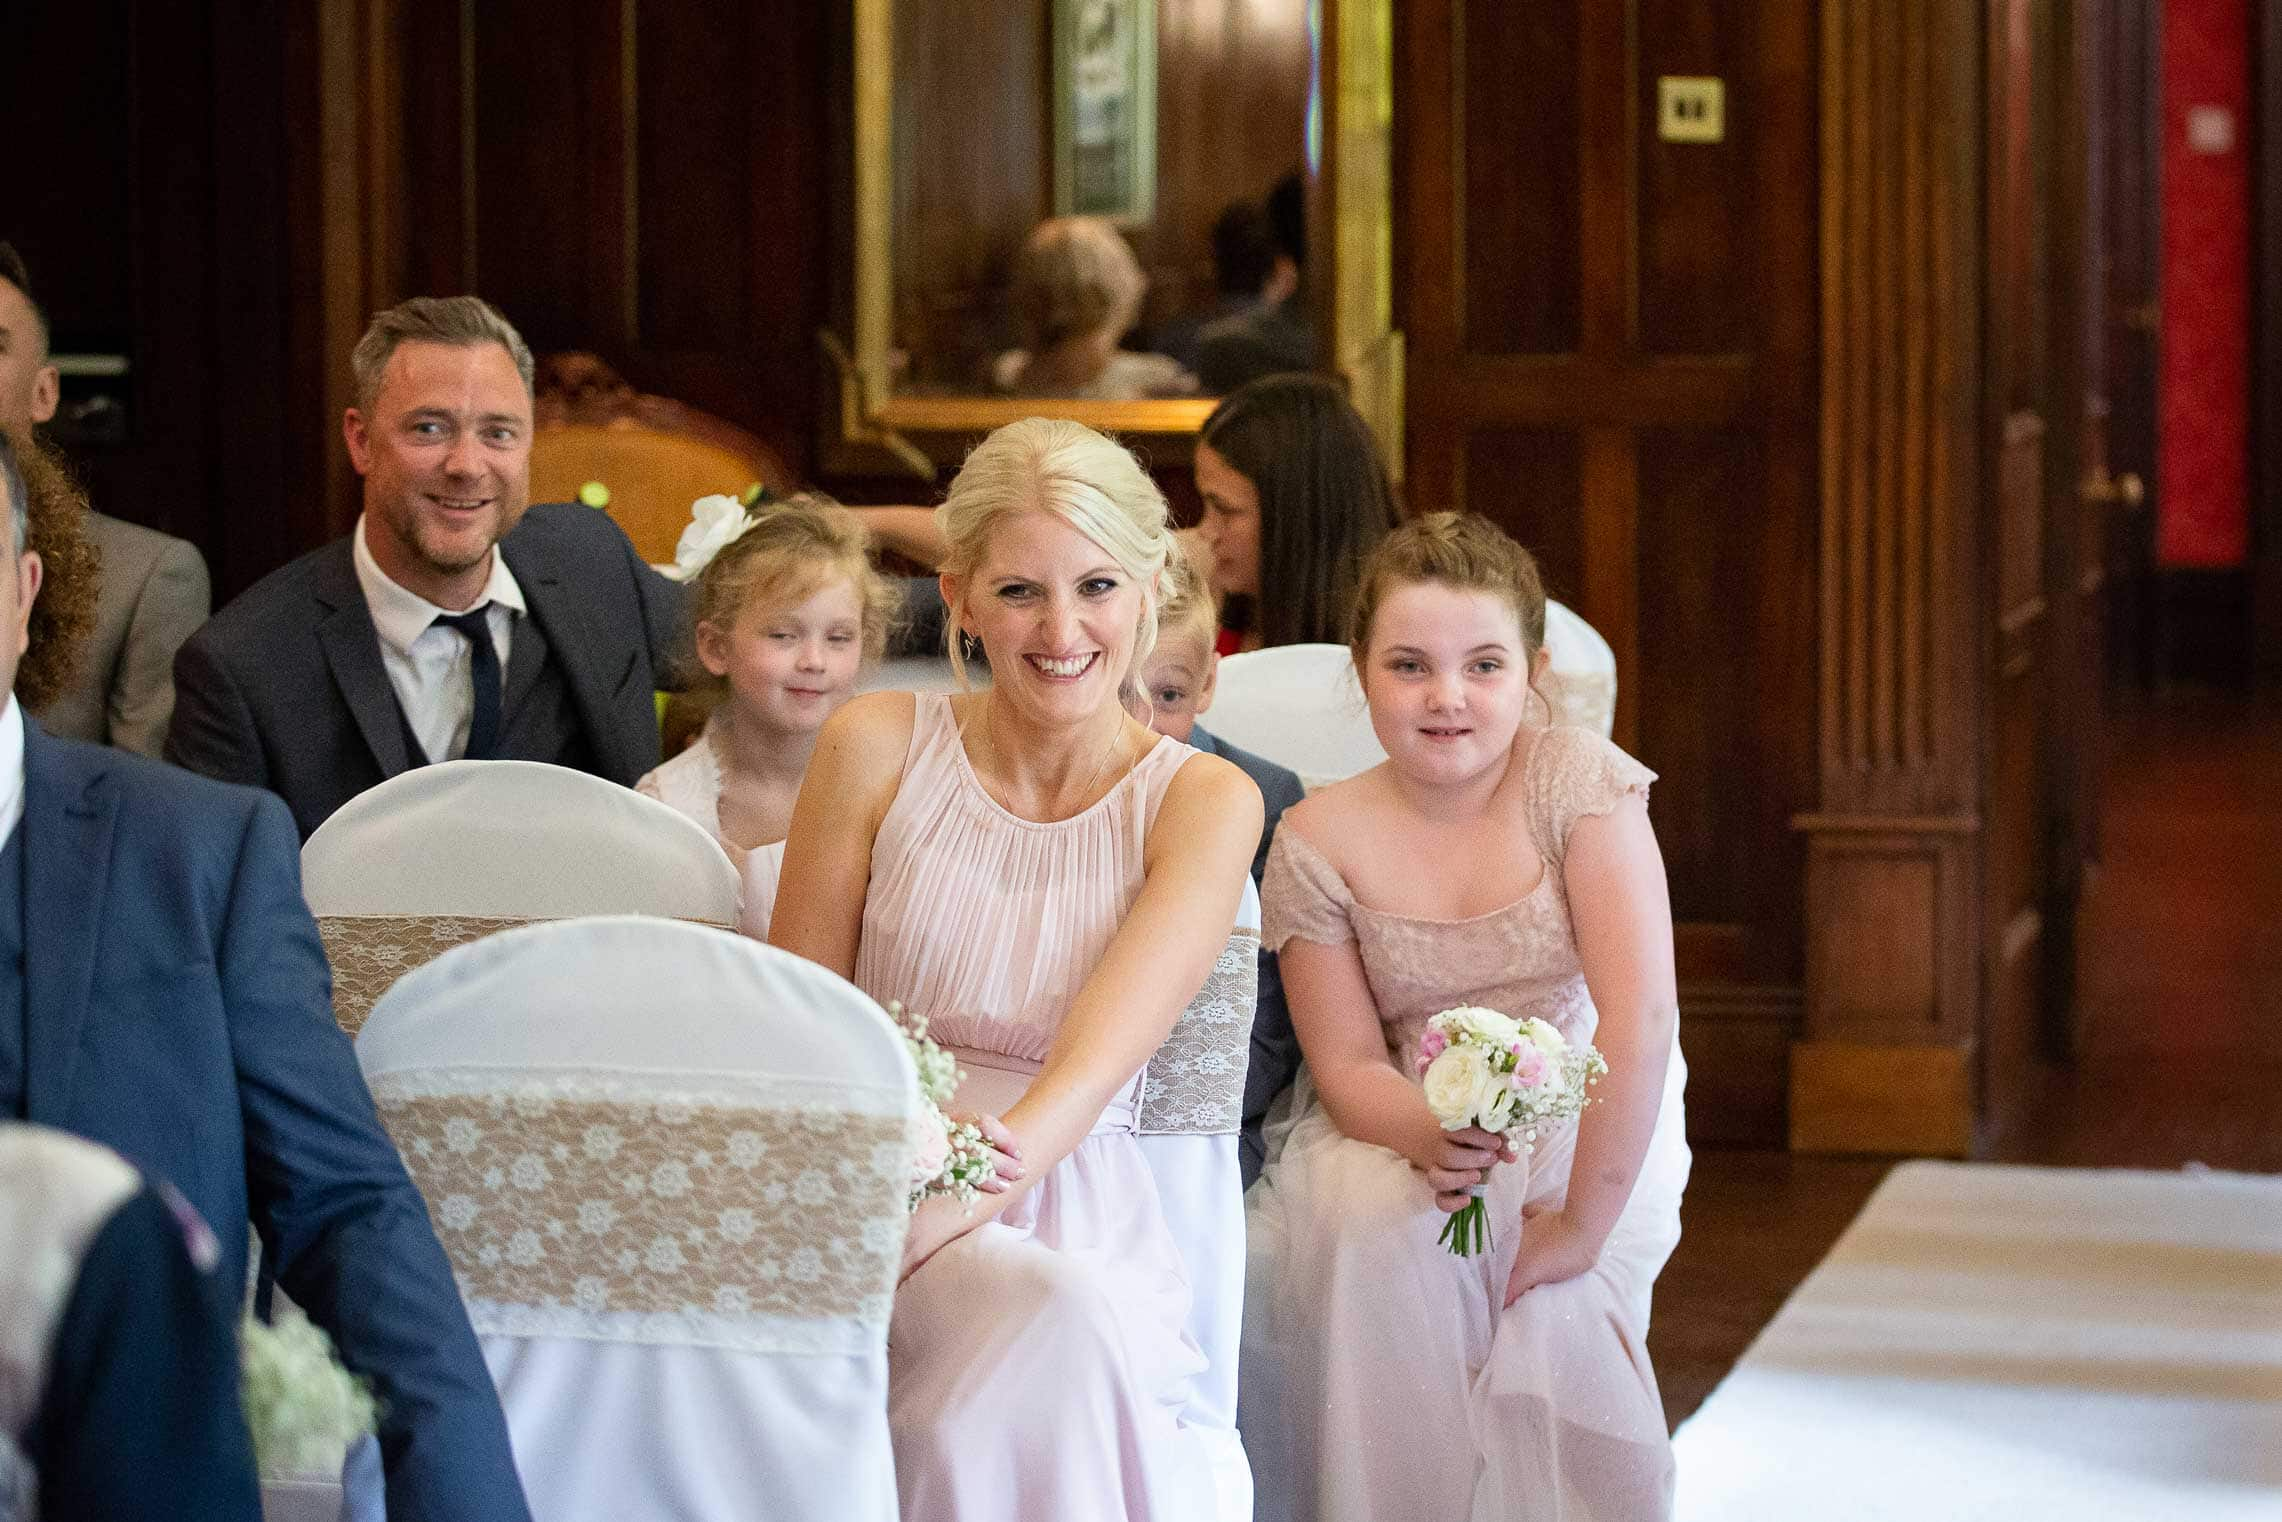 Photo of the wedding guests at Ellingham Hall